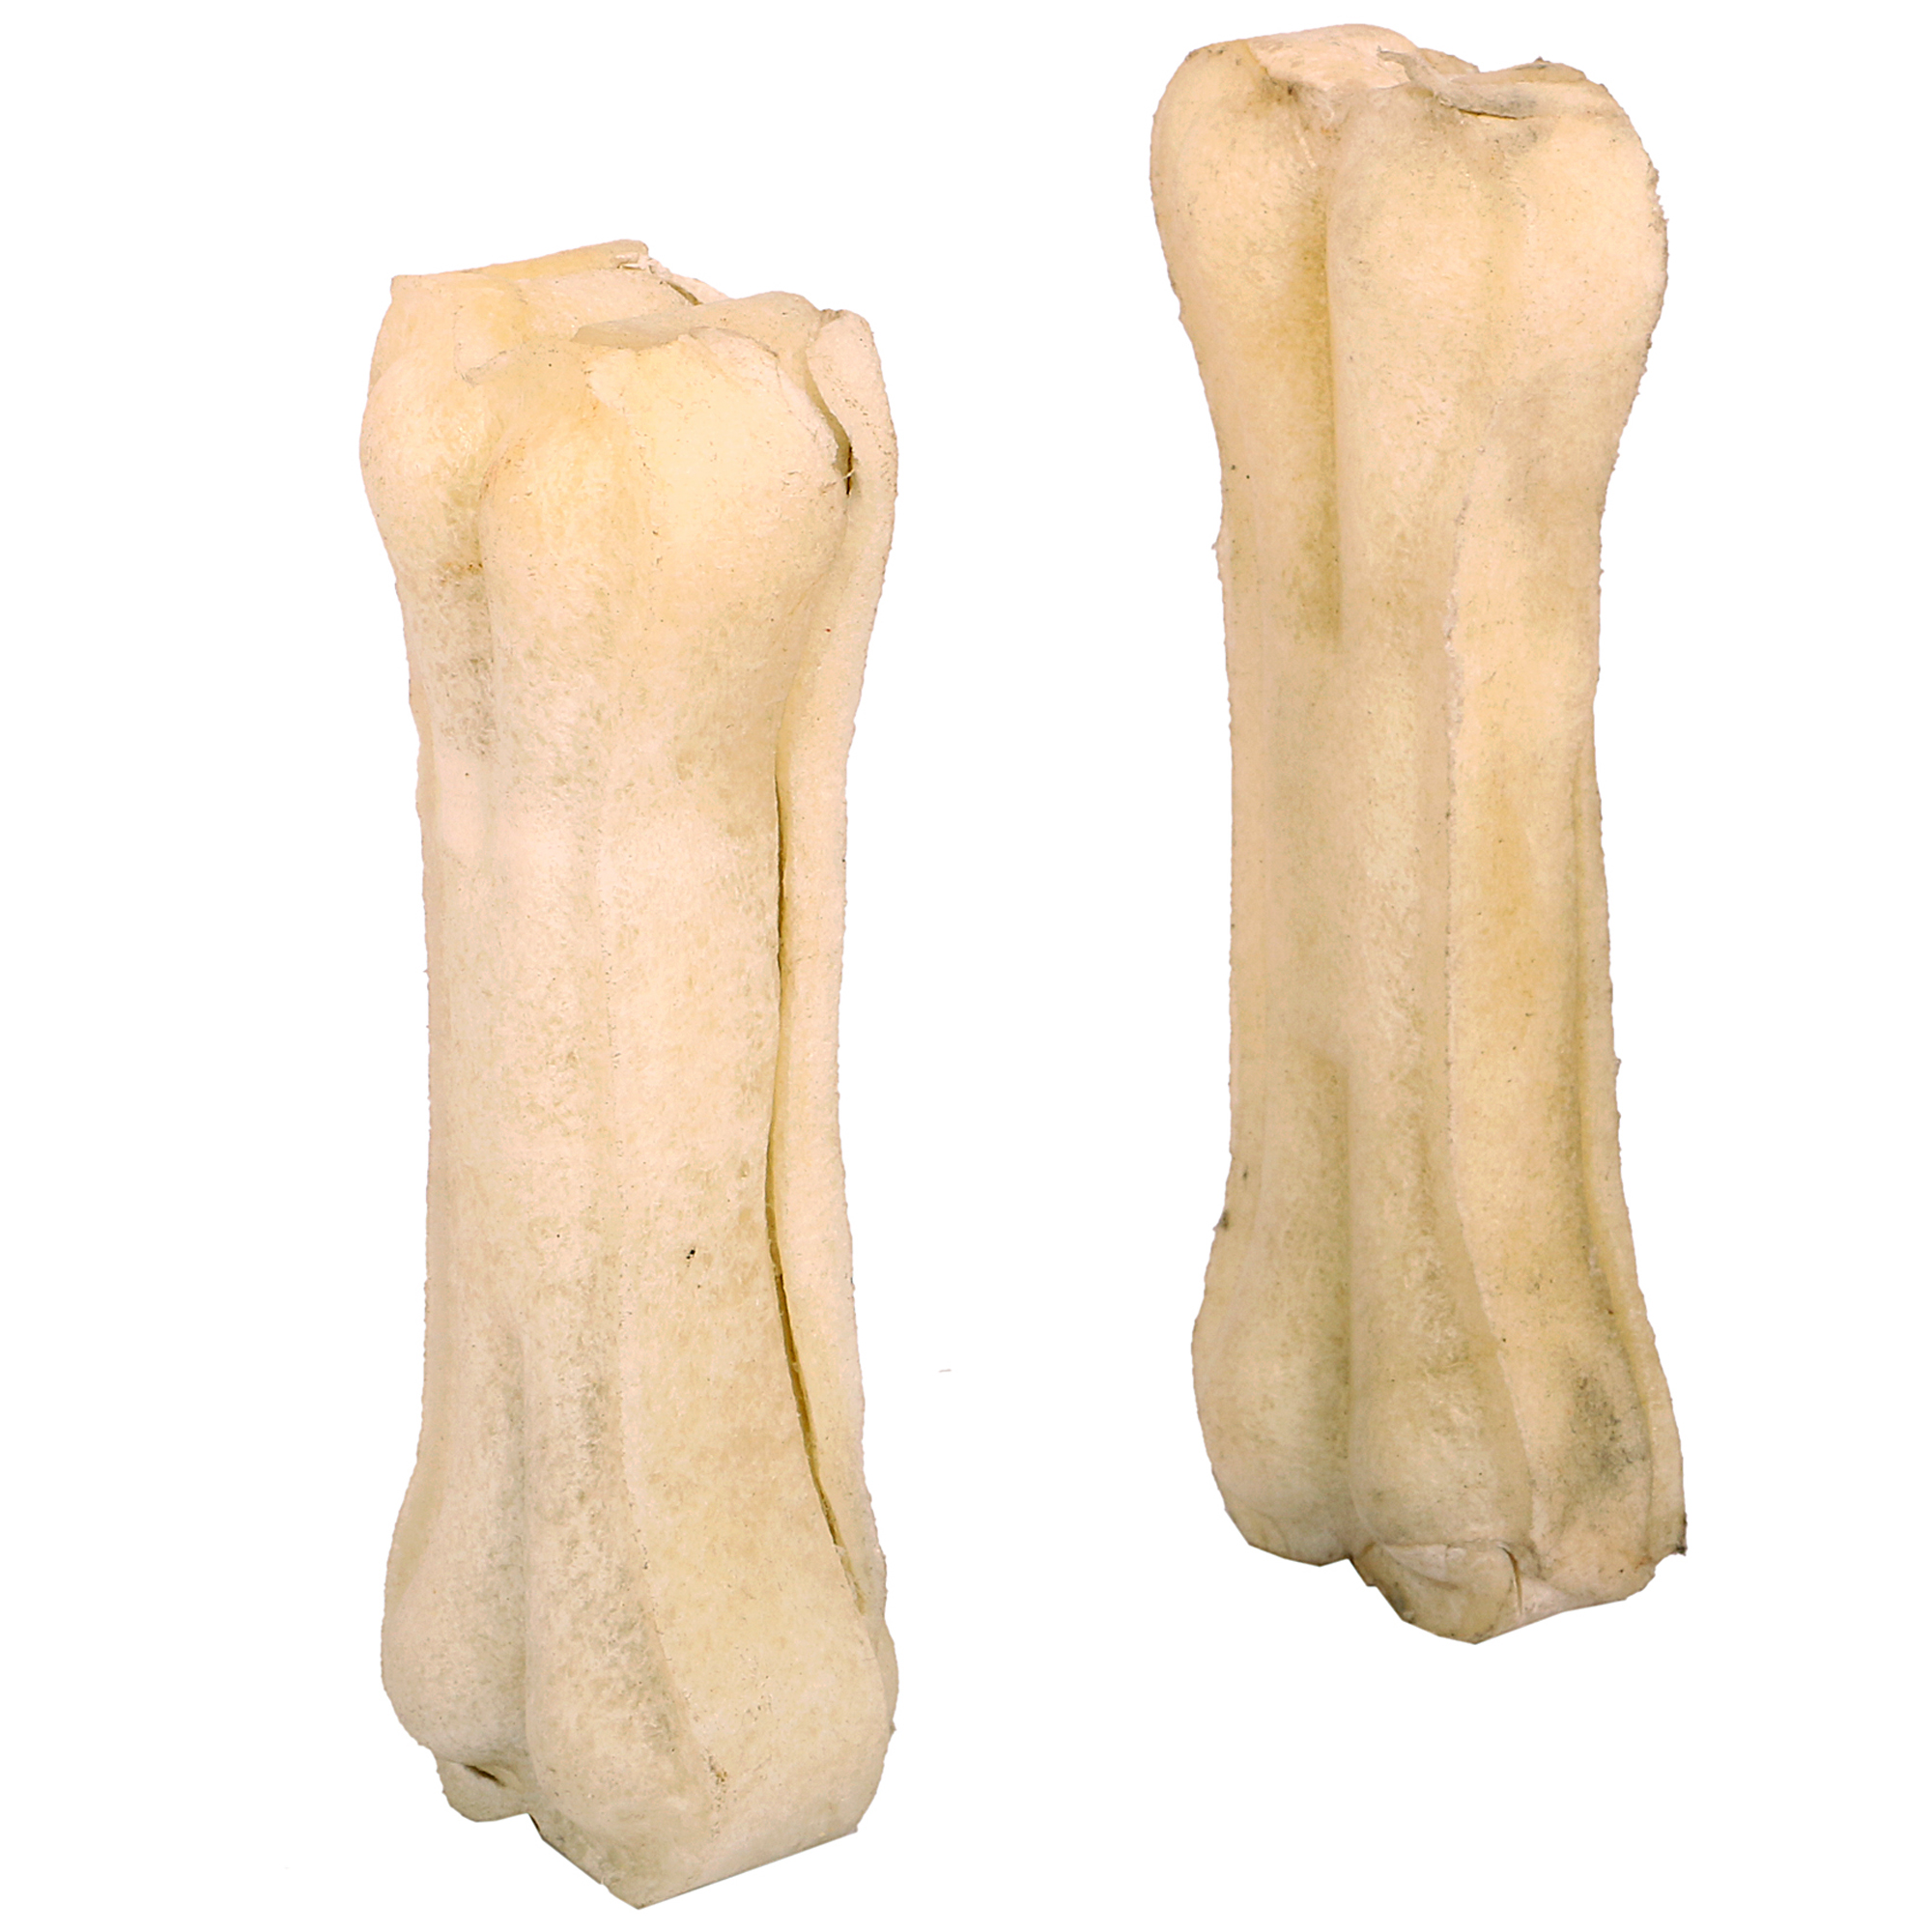 DogSpot Rawhide Bones 5 Inches - 2 pieces